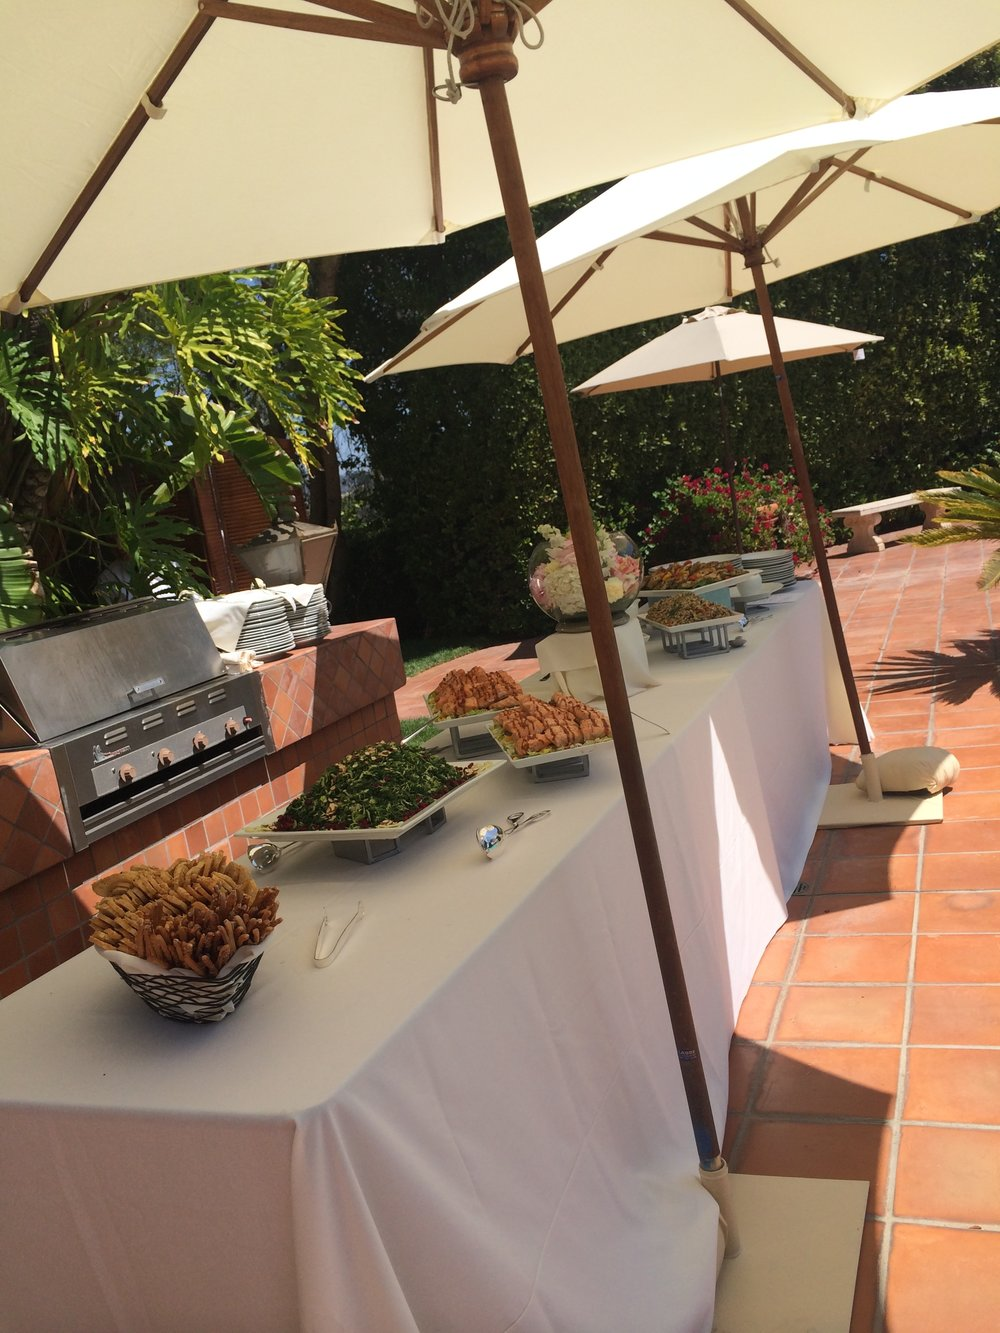 Private-Ladies-Luncheon-Umbrellas-Catering-Los Angeles.JPG